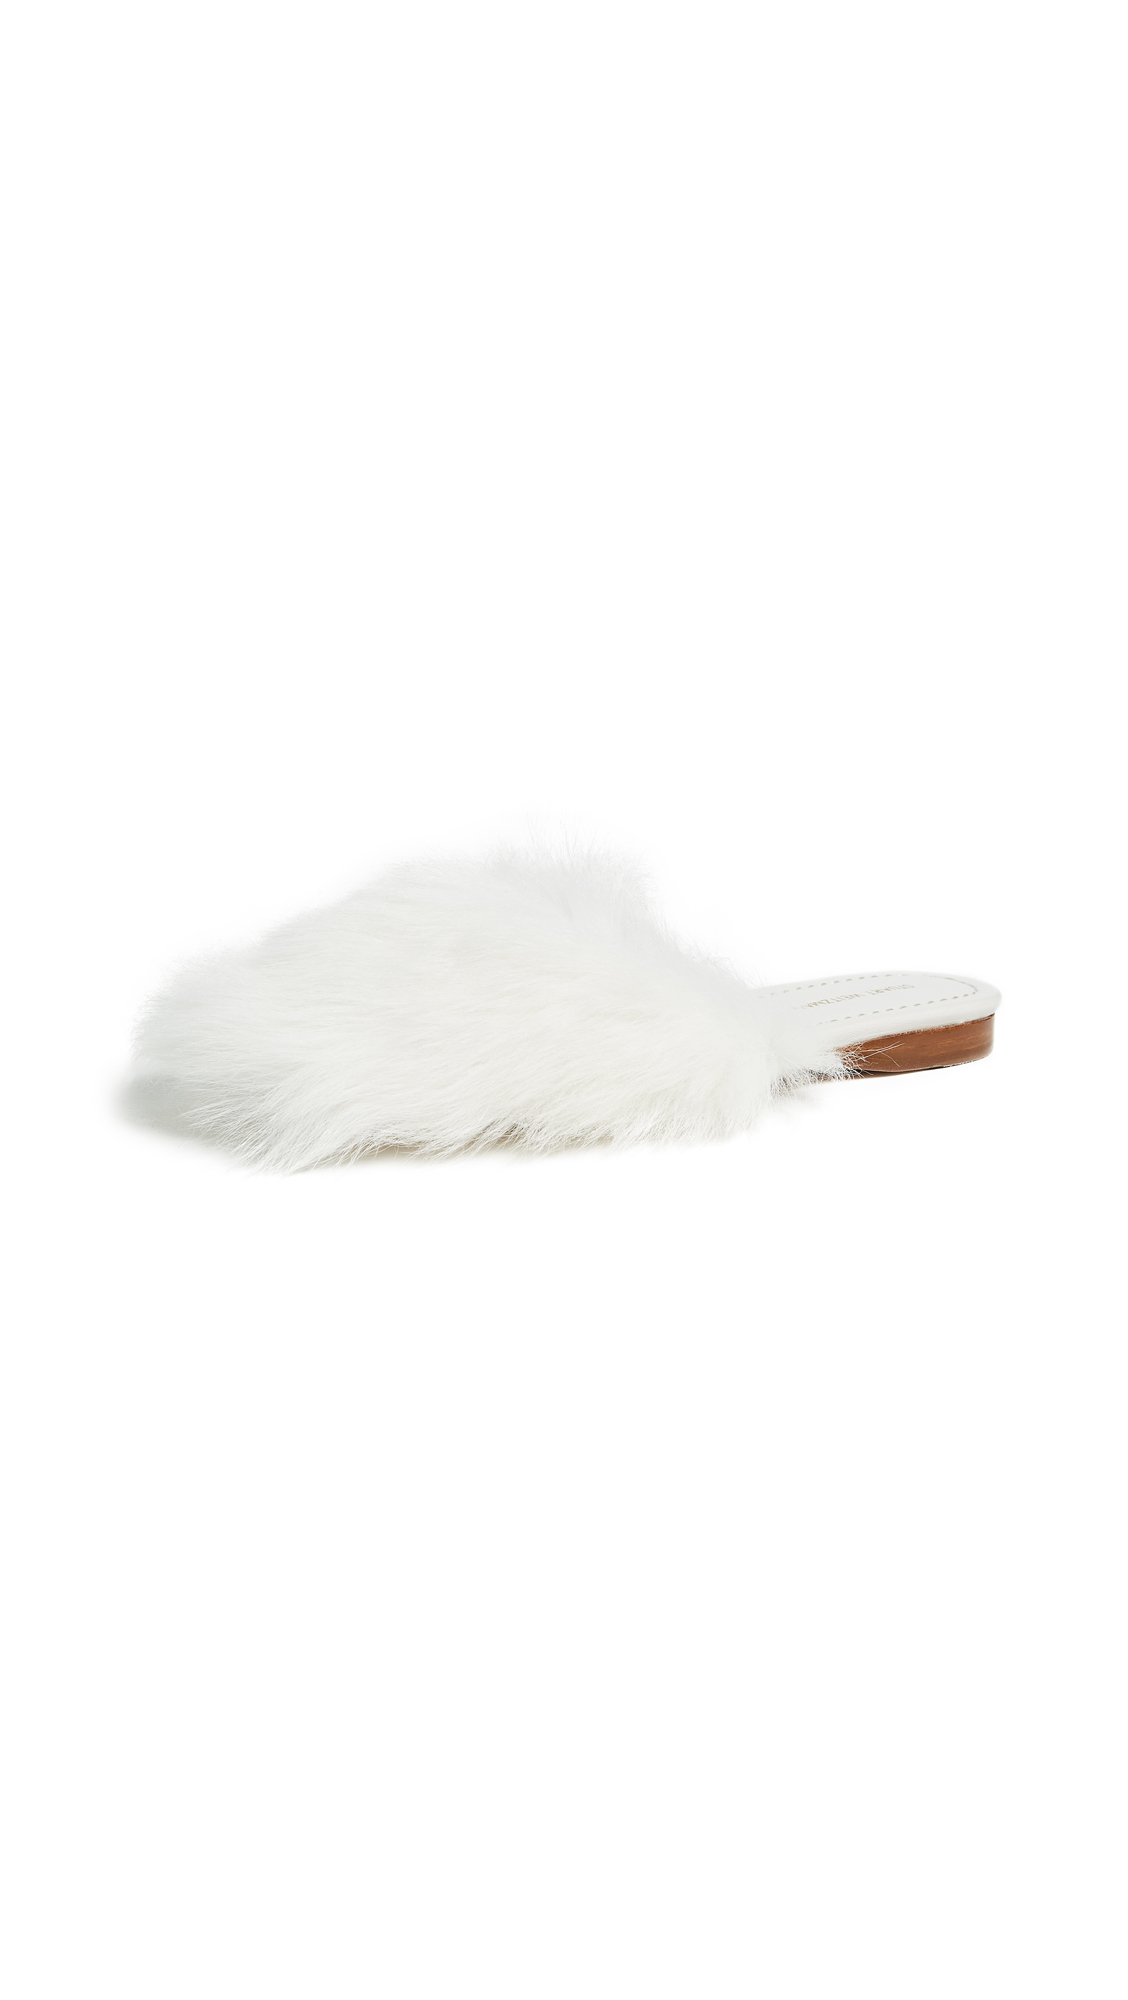 Stuart Weitzman Fur chic Slides - White